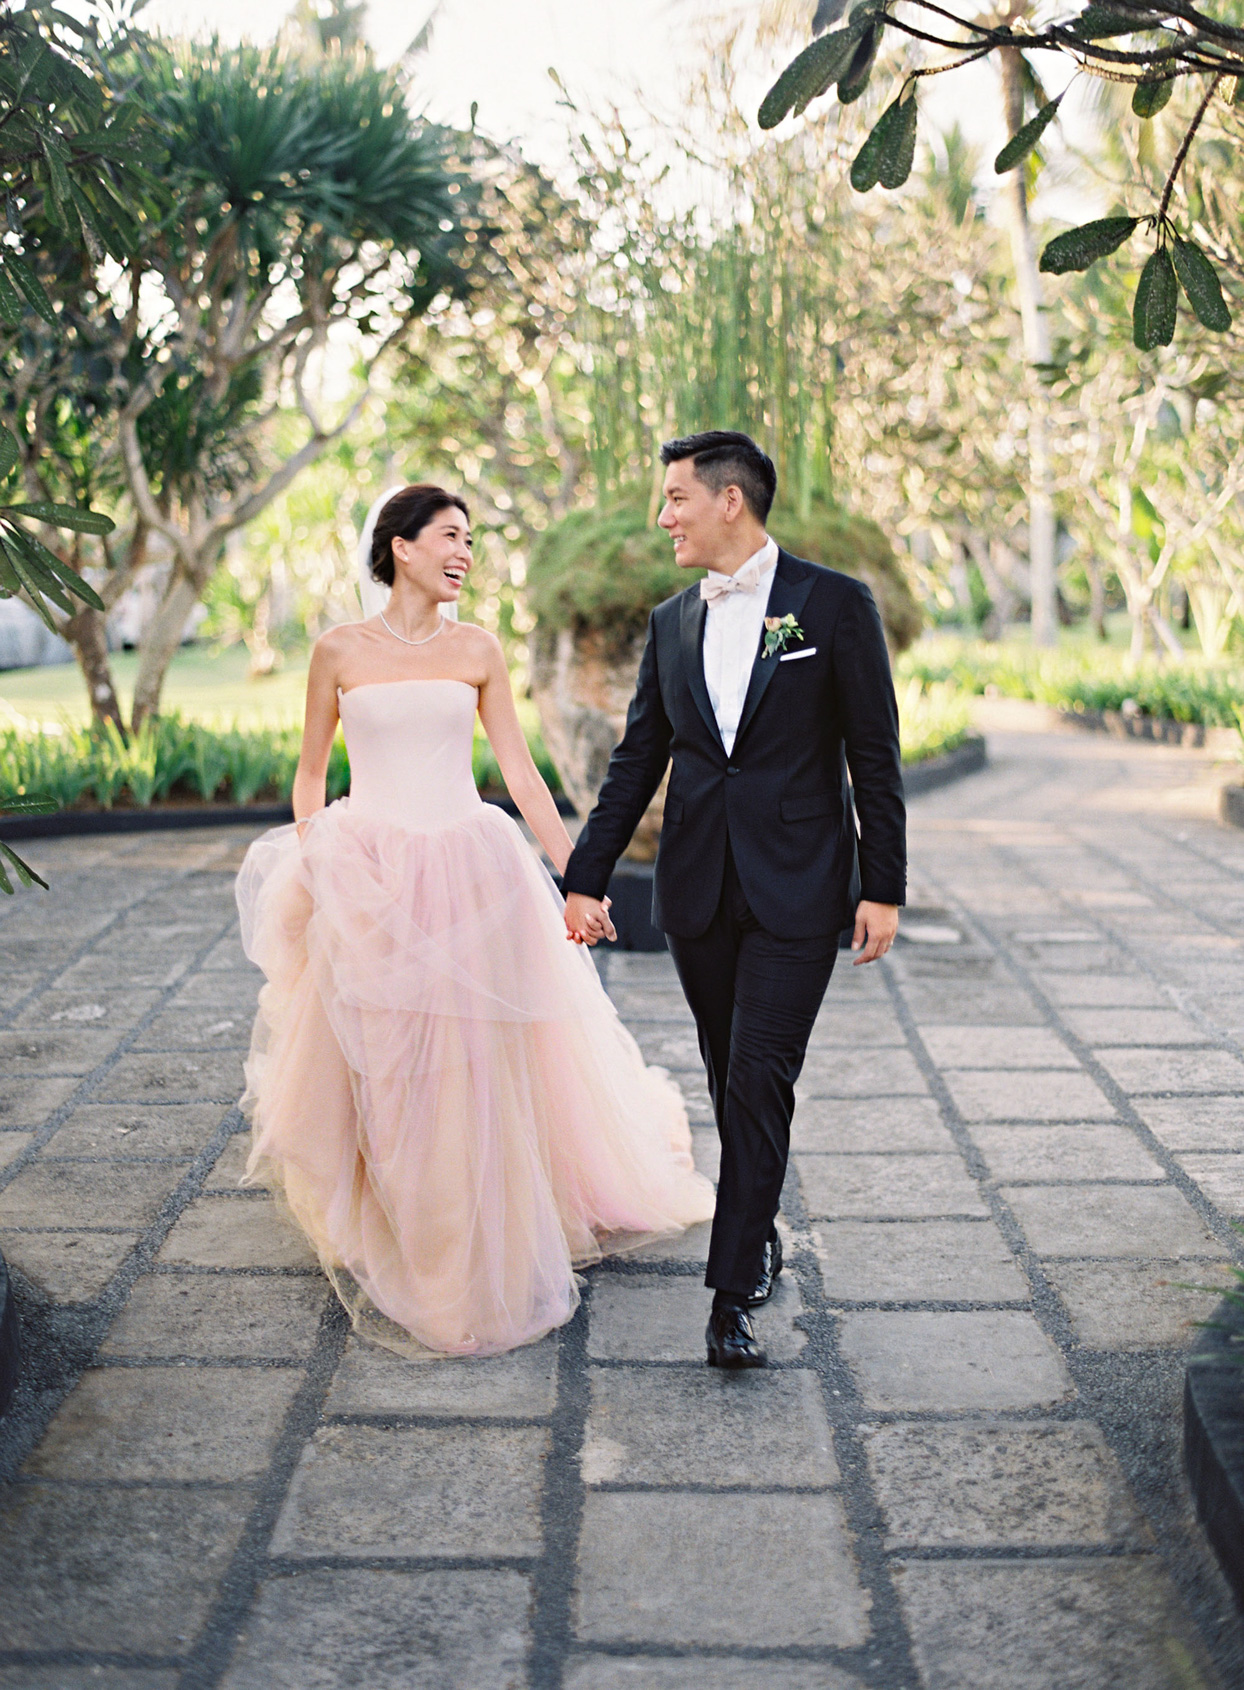 bride and groom holding hands smiling walking in stone paved garden area